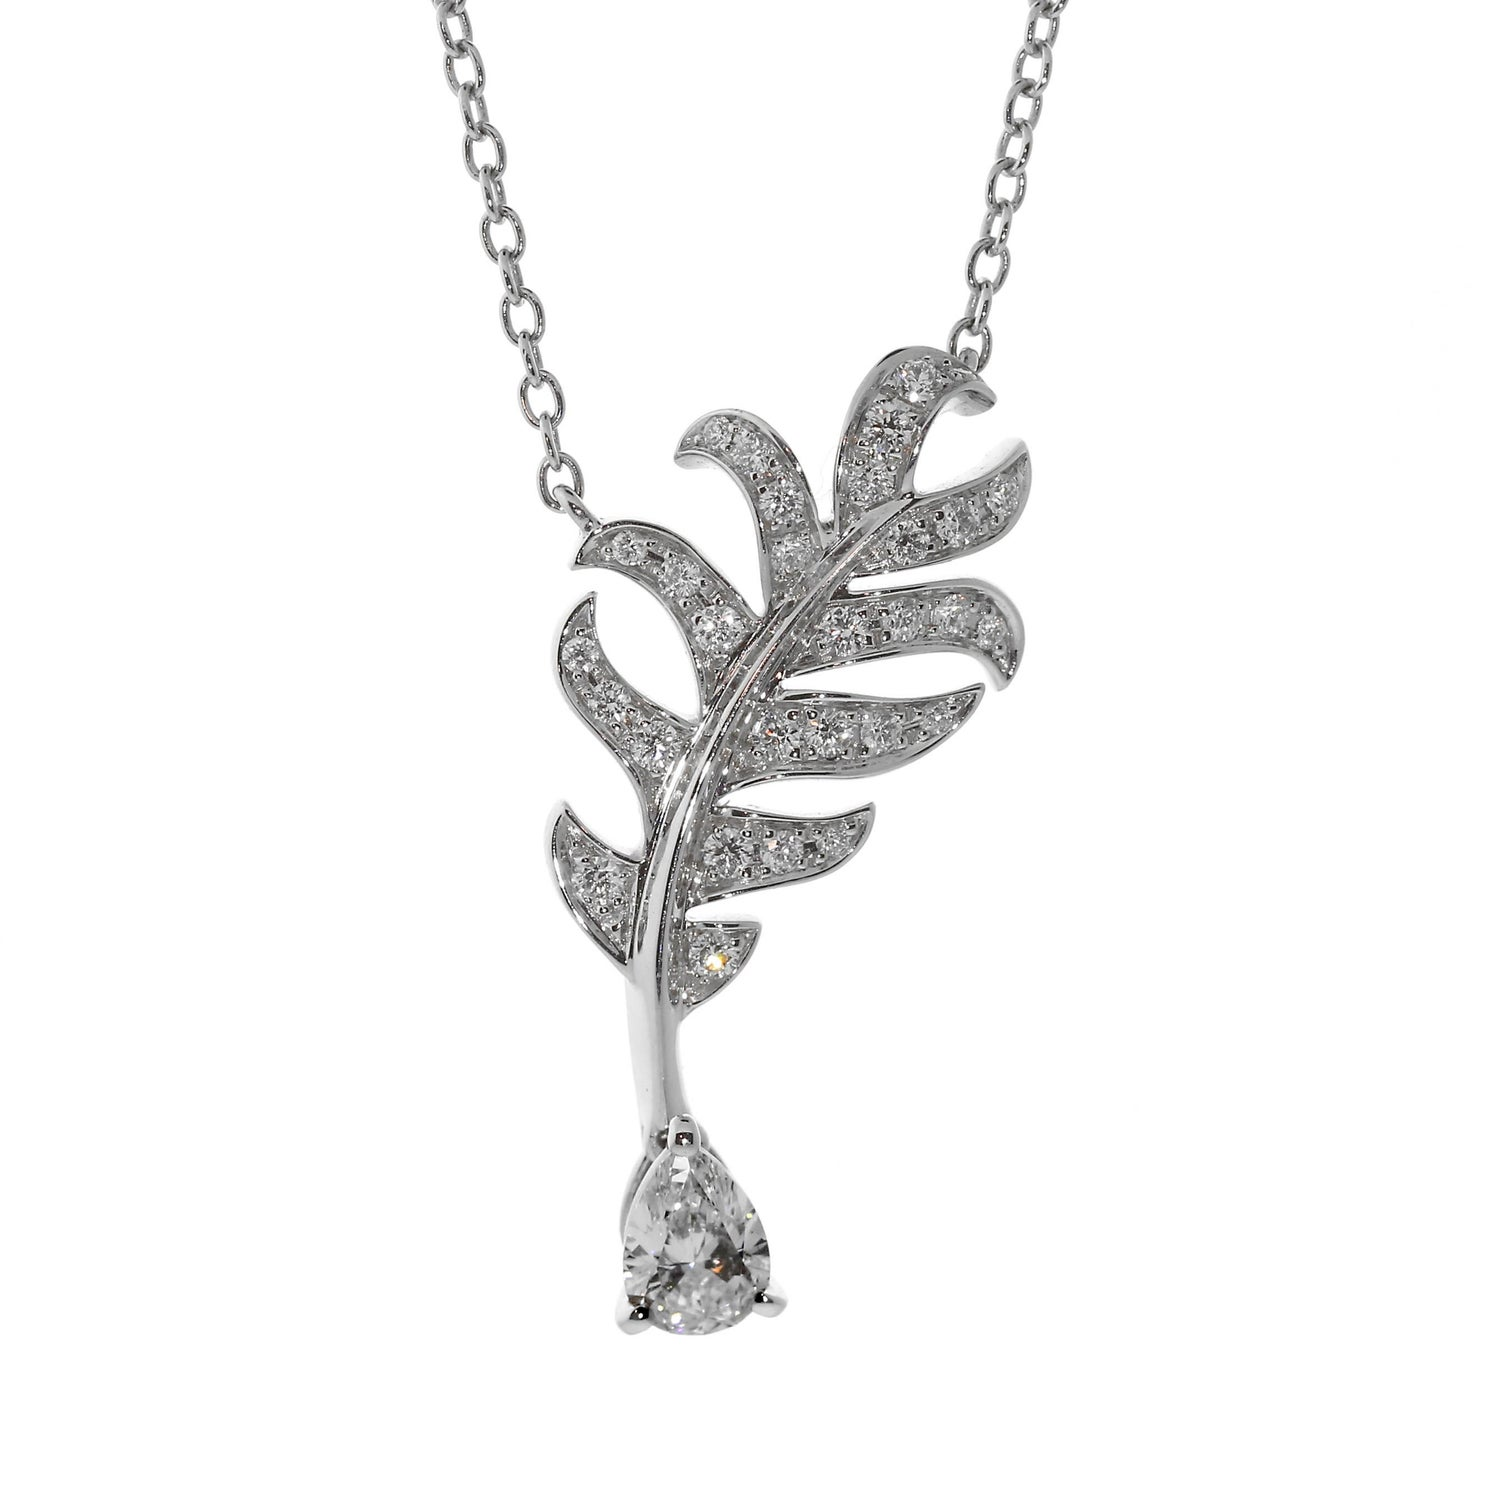 Chanel Plume De Chanel Diamond Necklace For Sale at 1stdibs